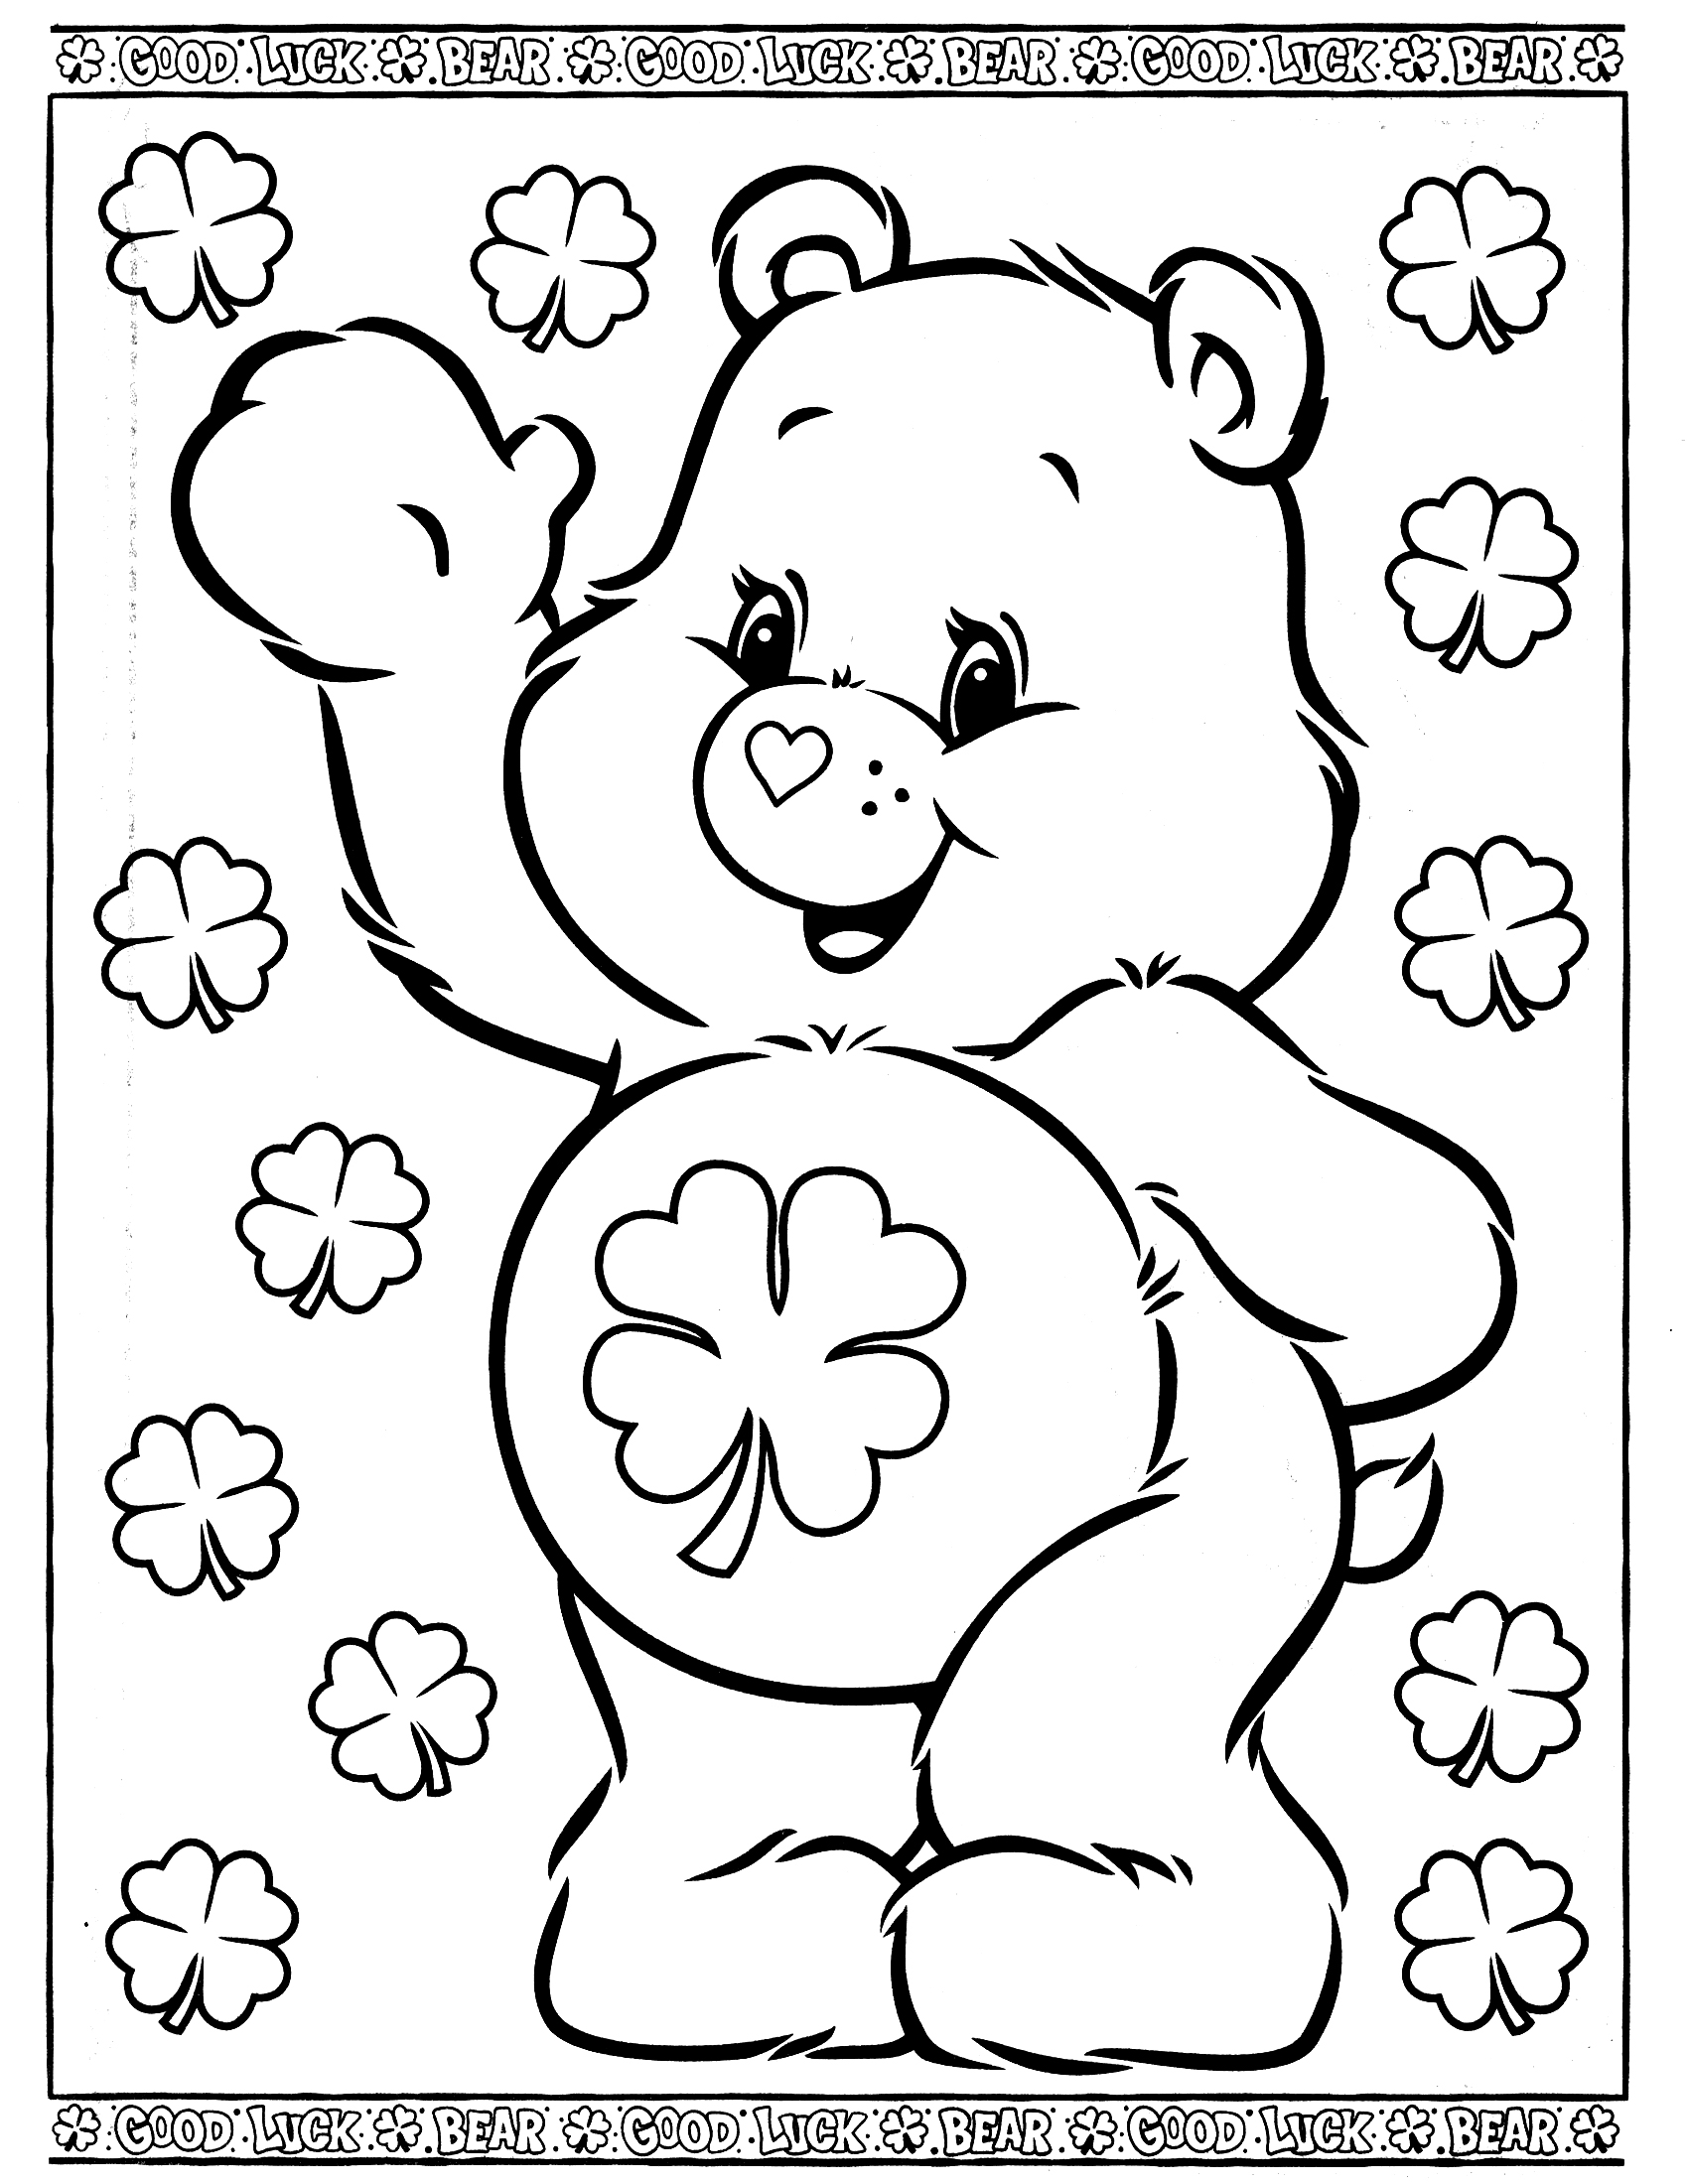 Good luck bear clipart black and white graphic free Good Luck Bear Coloring Pages graphic free